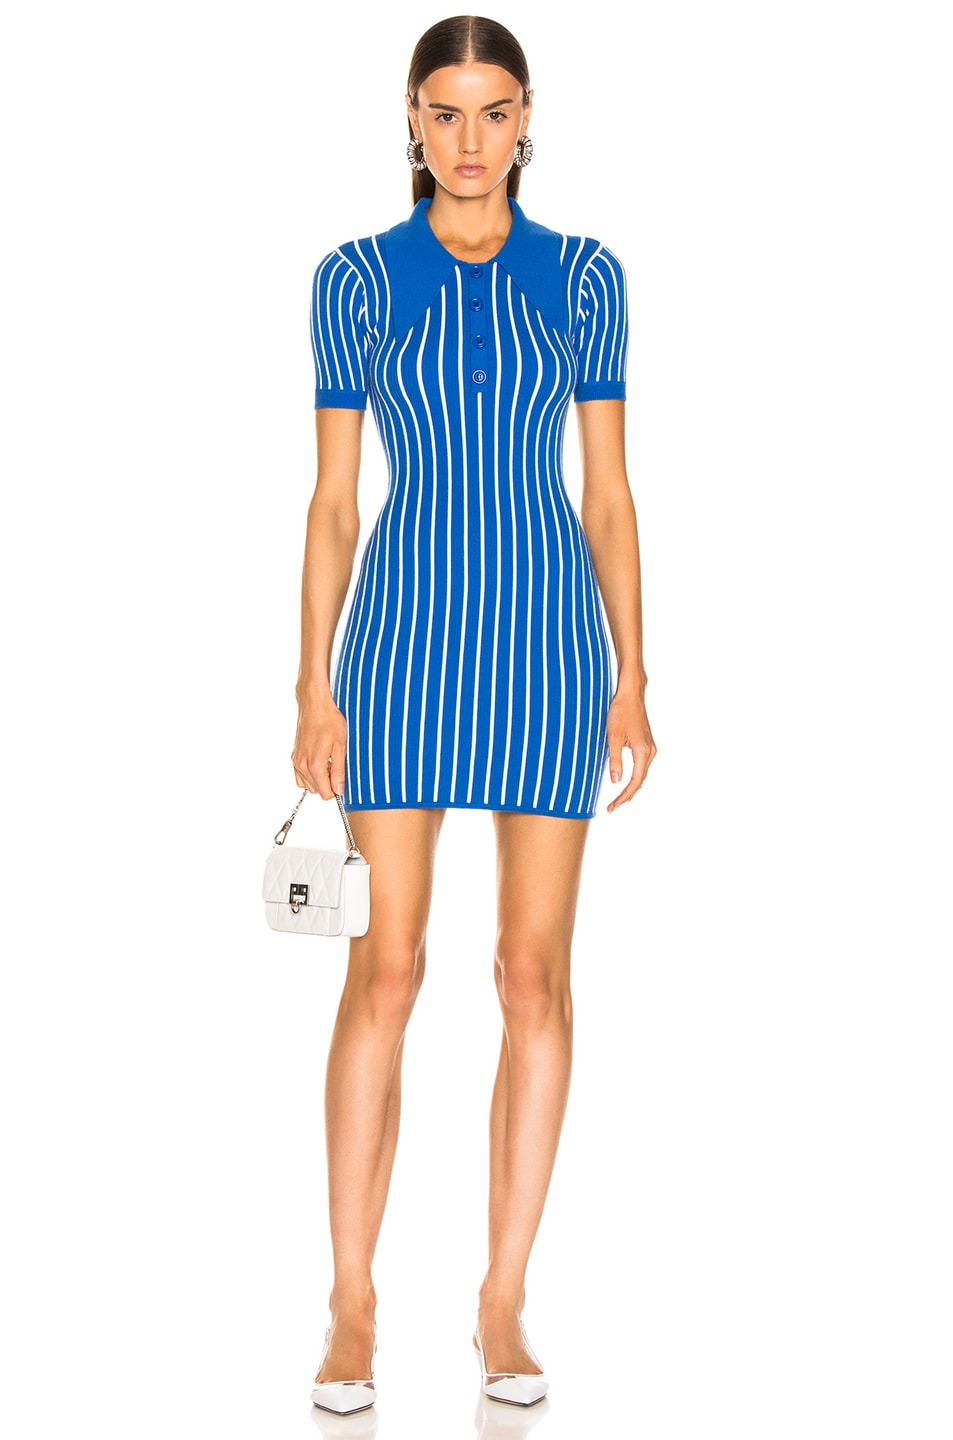 Image 1 of JoosTricot Polo Dress in Blue & White